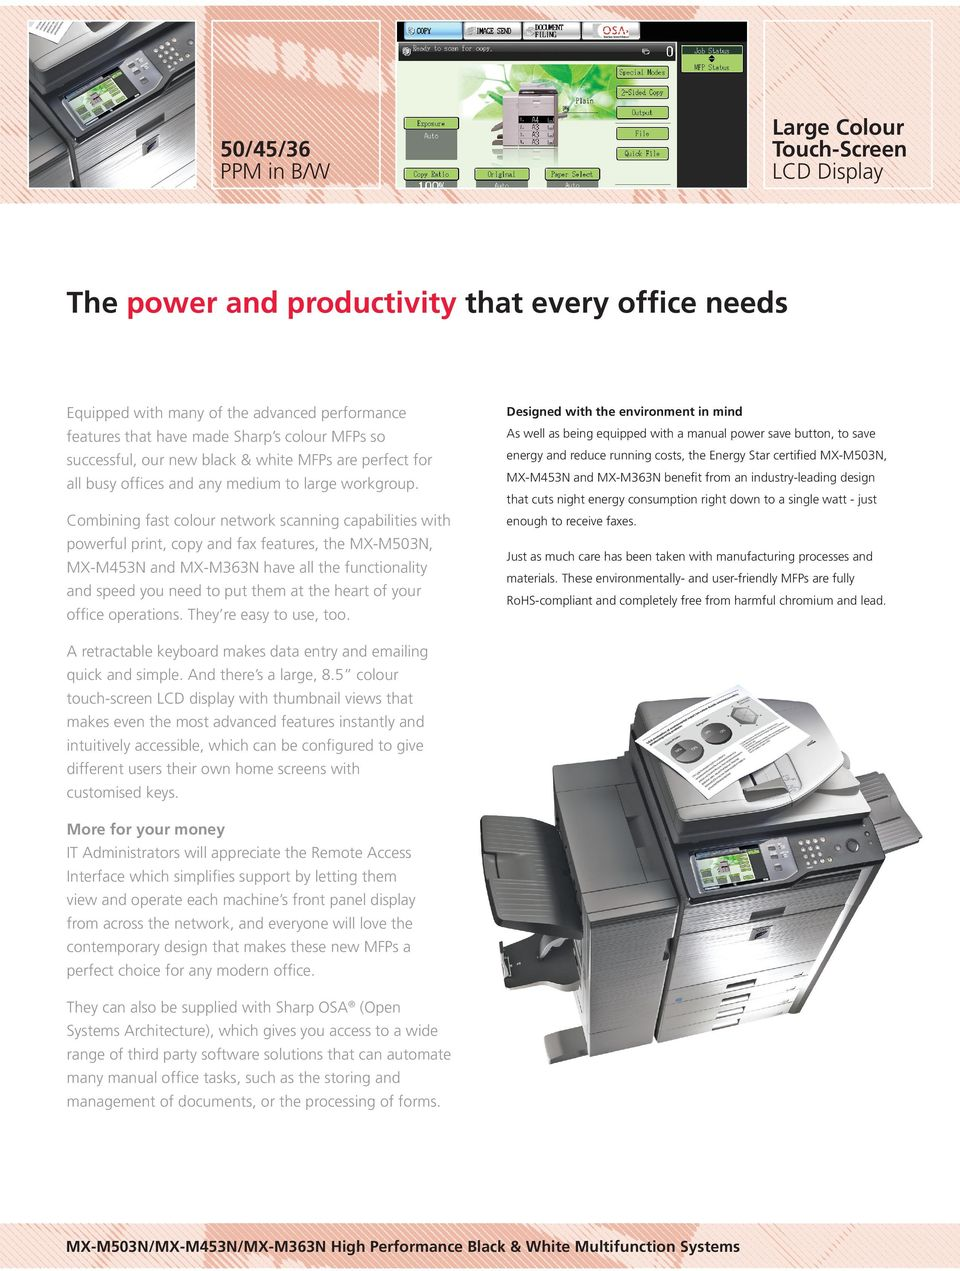 Designed with the environment in mind Combining fast colour network scanning capabilities with powerful print, copy and fax features, the MX-M503N, MX-M453N and MX-M363N have all the functionality